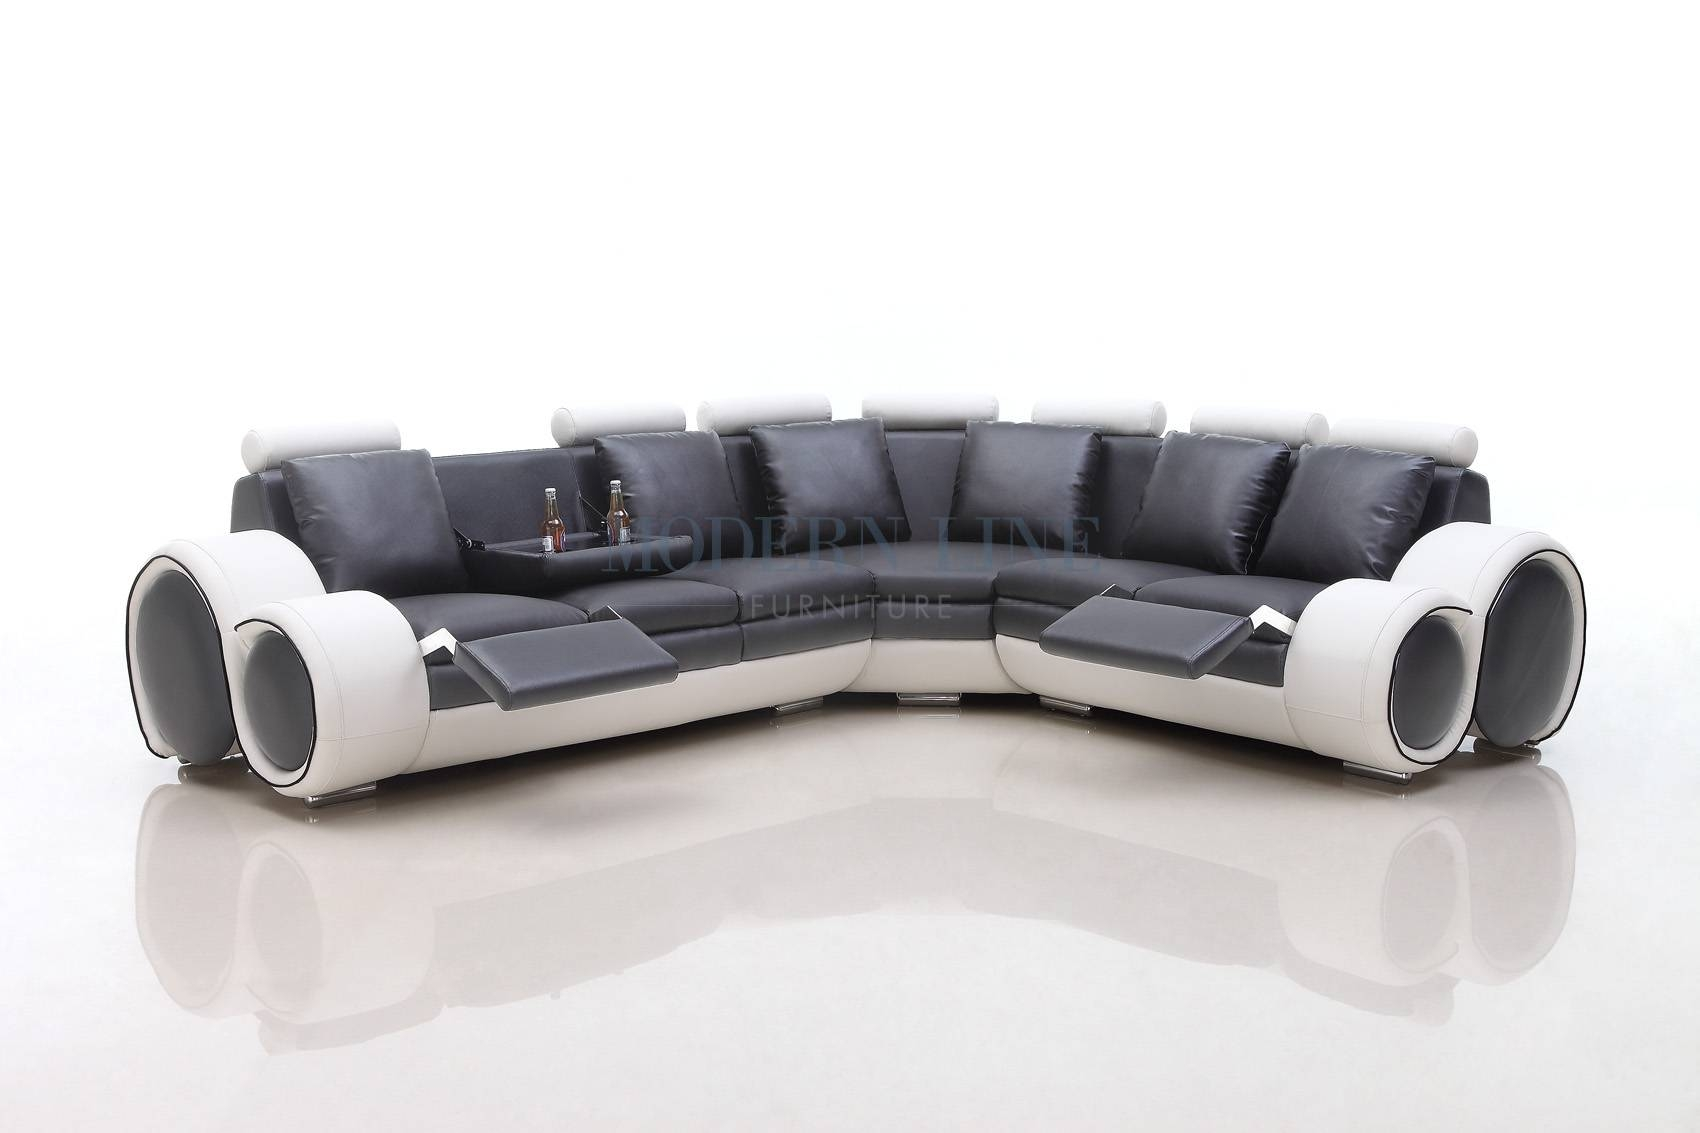 Black Bonded Leather Sectional Sofa With Single Recliner. Medium inside White And Black Sofas (Image 12 of 30)